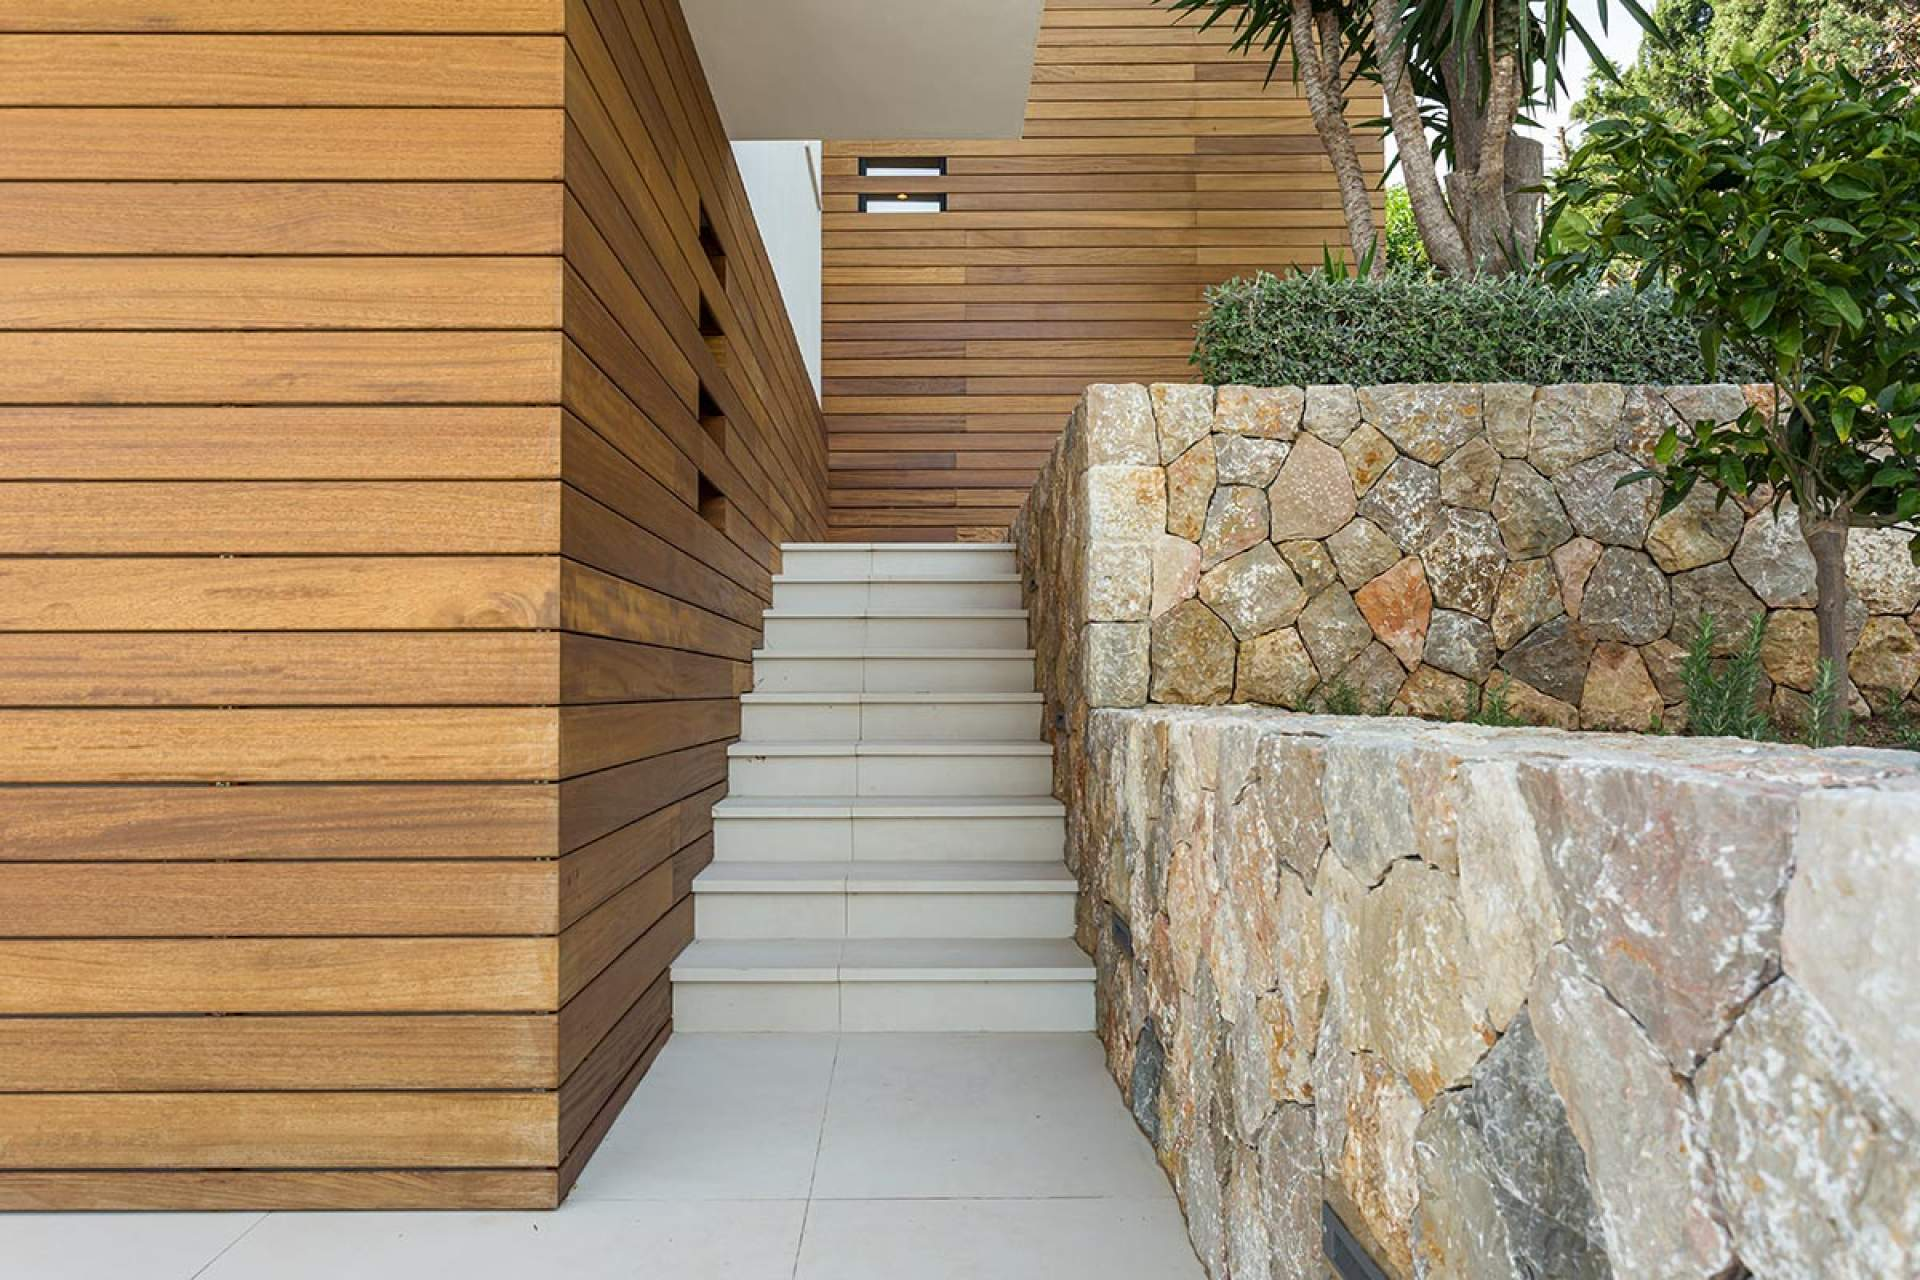 Micro Cement villa stairs setting using Light tile